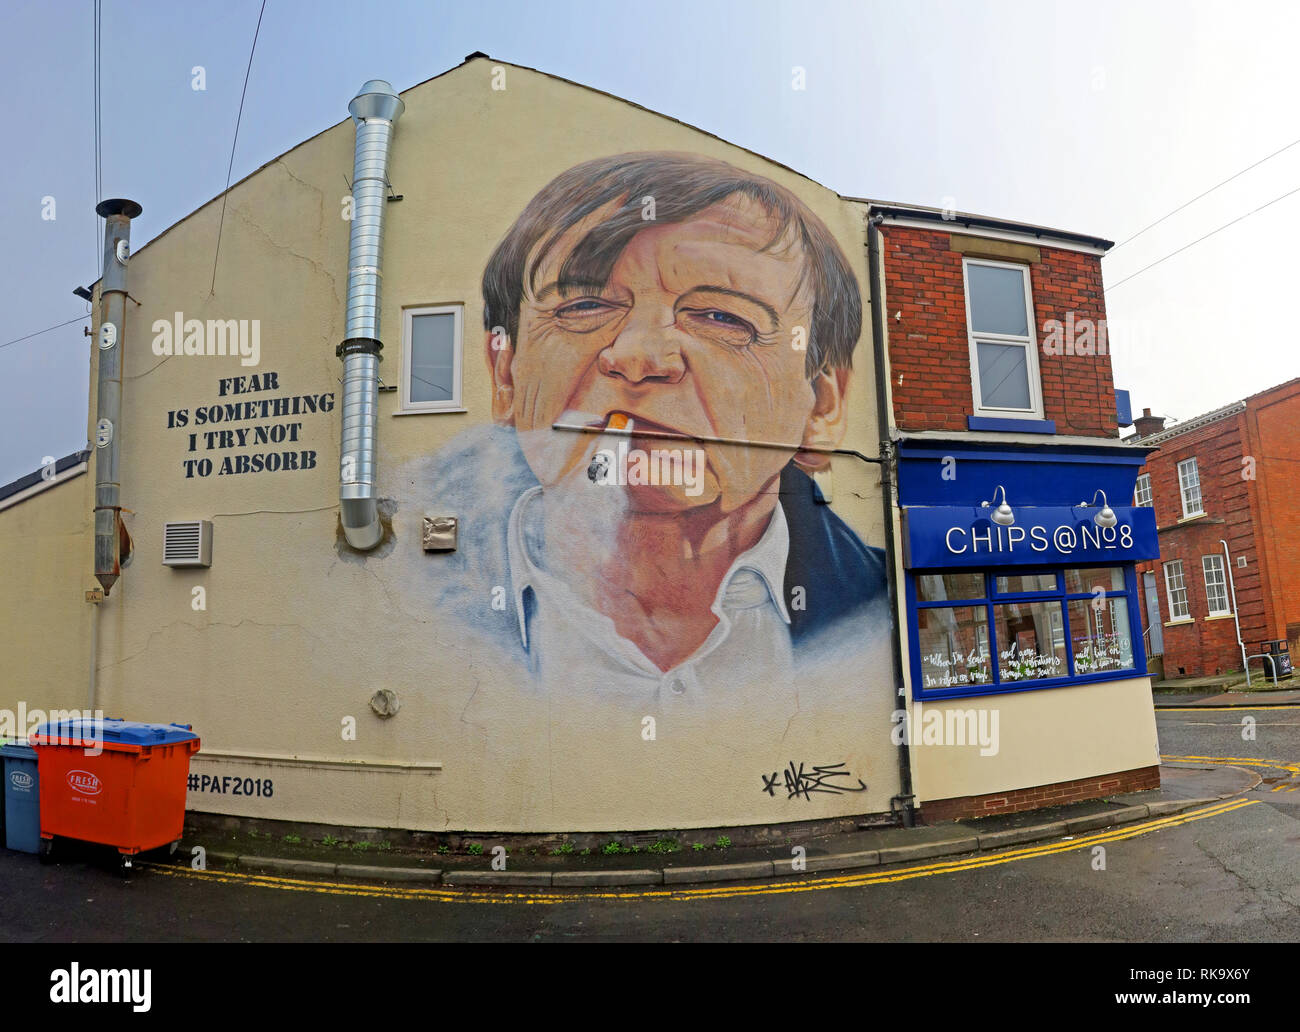 'Fear is something I try not to absorb',Clifton Road, Prestwich, The Fall, Mark E Smith artwork, 8 Clifton Road, Prestwich, Bury M25 3HQ, England - Stock Image